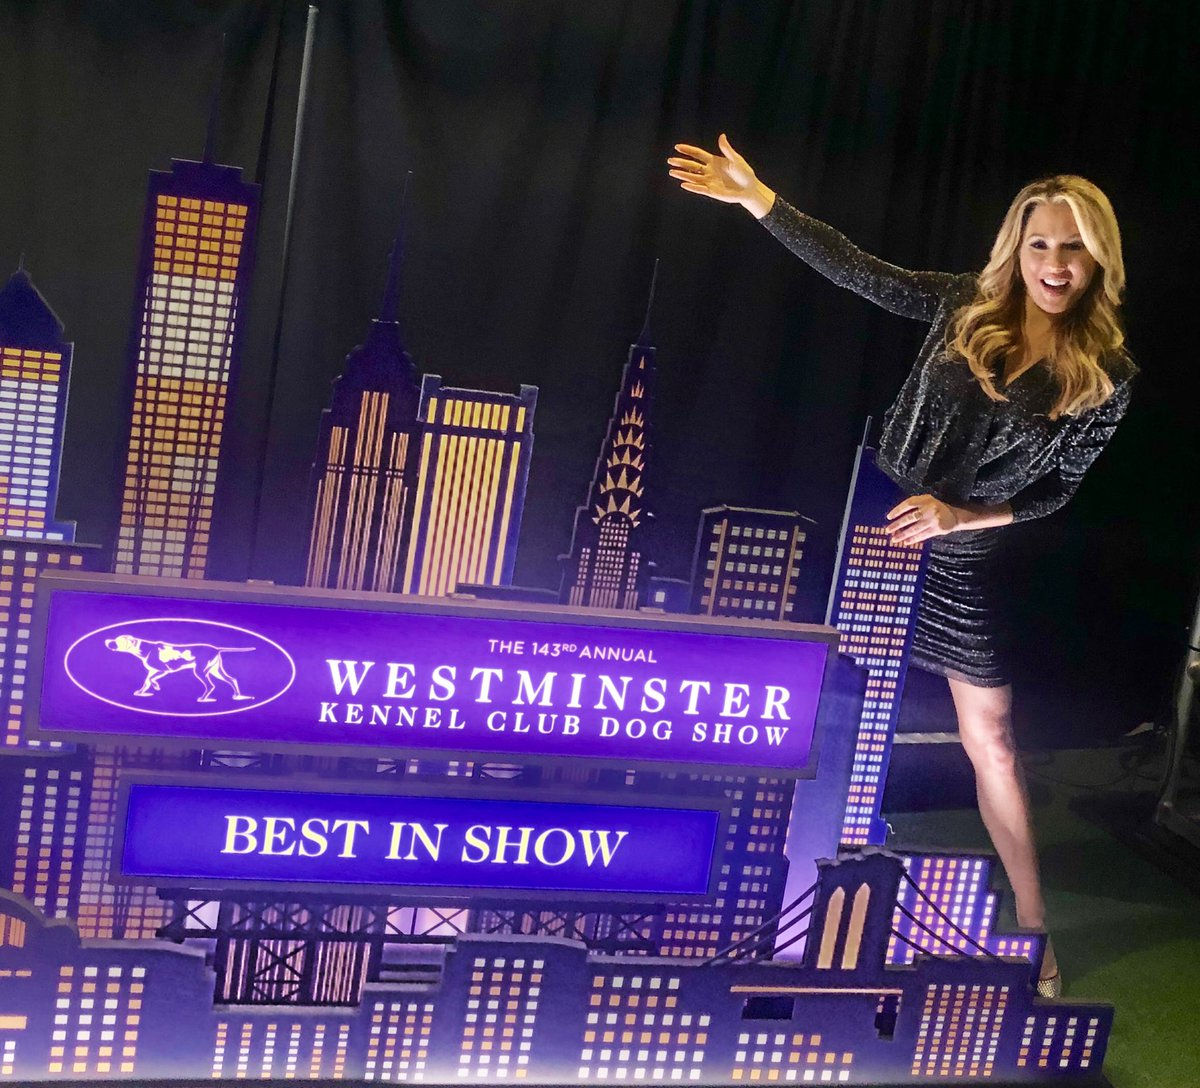 Another #Westminster in the books! This event never disappoints. Congratulations @WKCDOGS !